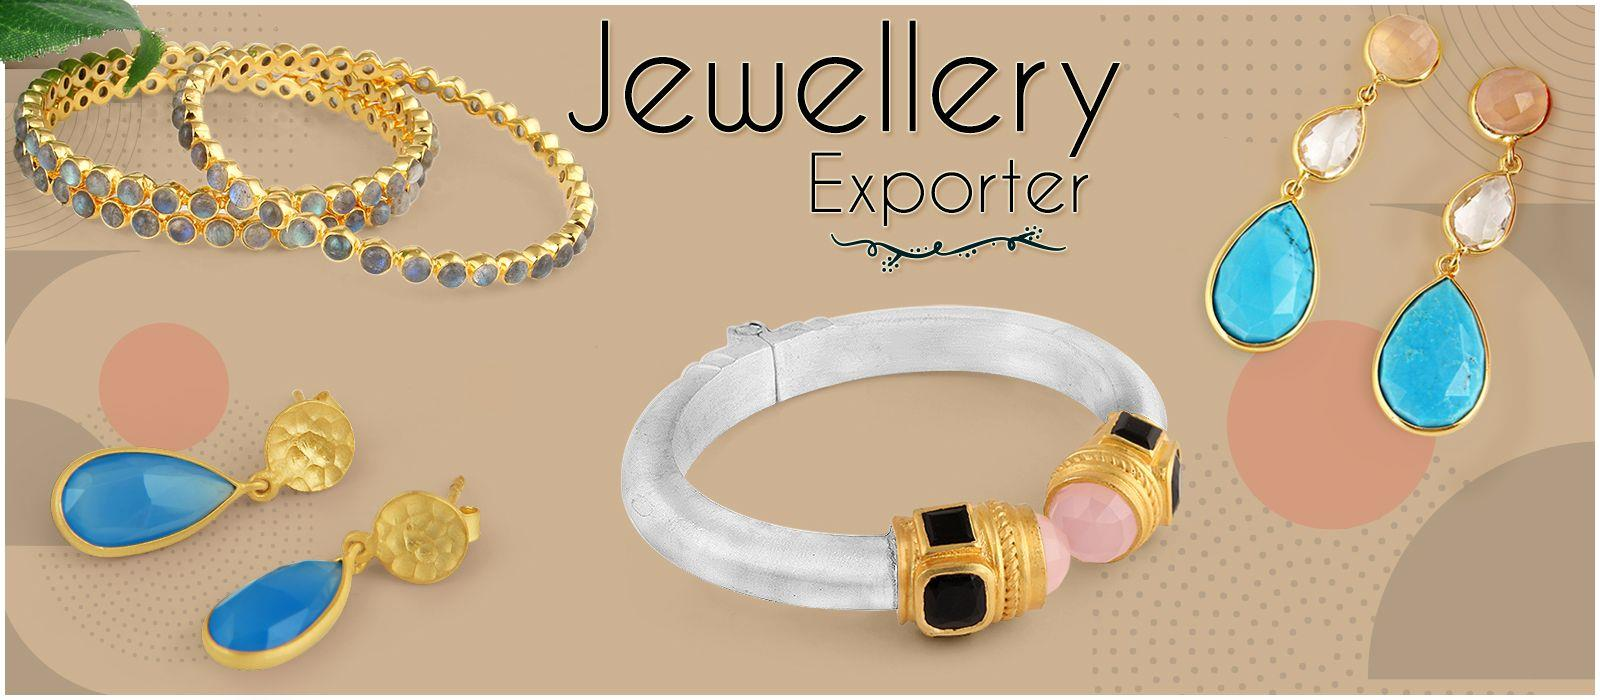 Jewelry exporter from India